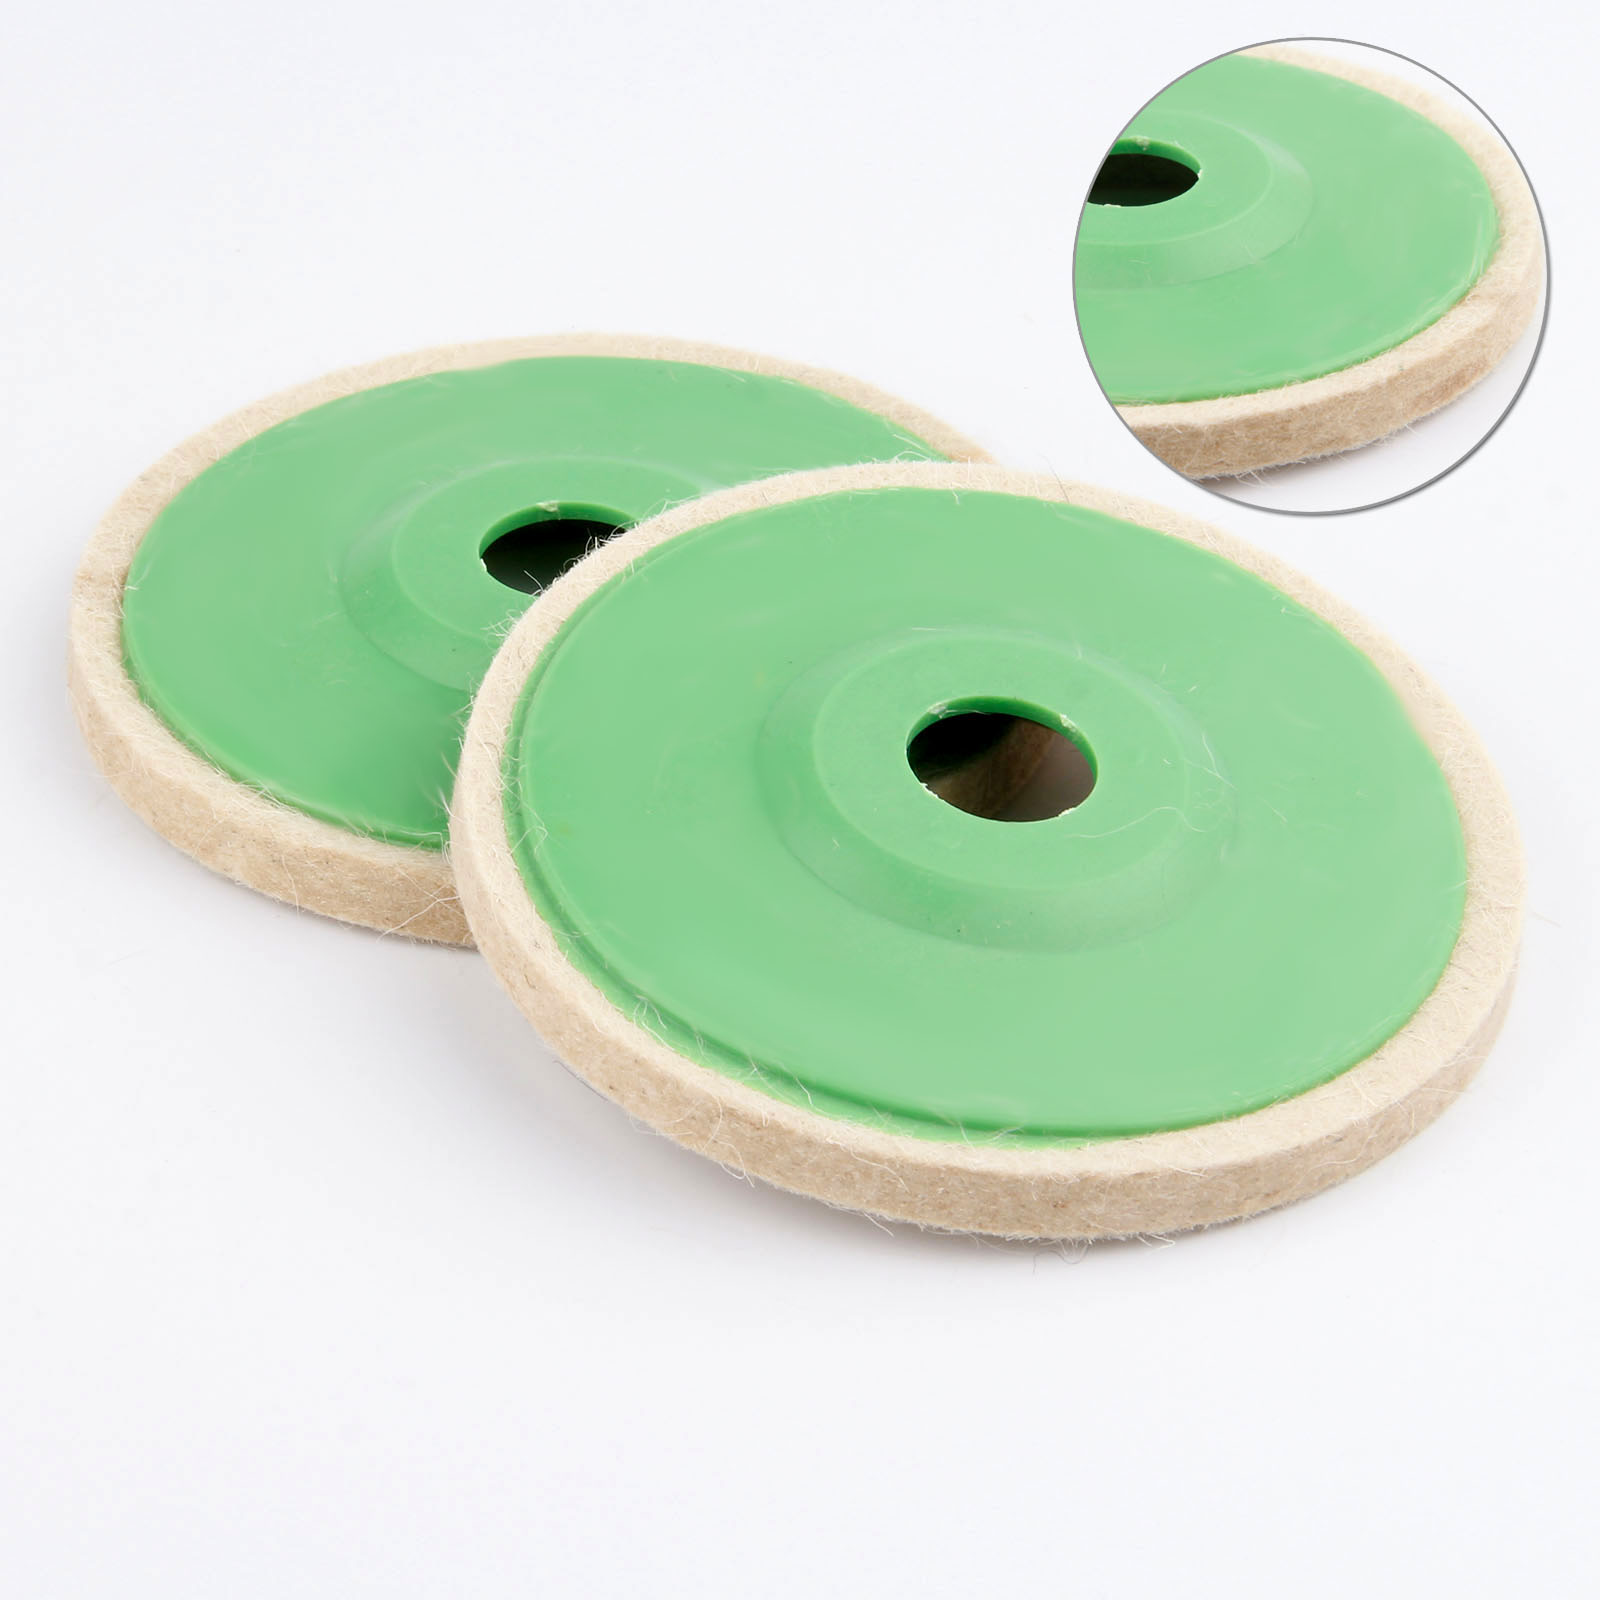 5in 125mm Wool Felt Grinding Wheel Pad Polishing Disc Buffer Polisher Tools For Polishing And Repair